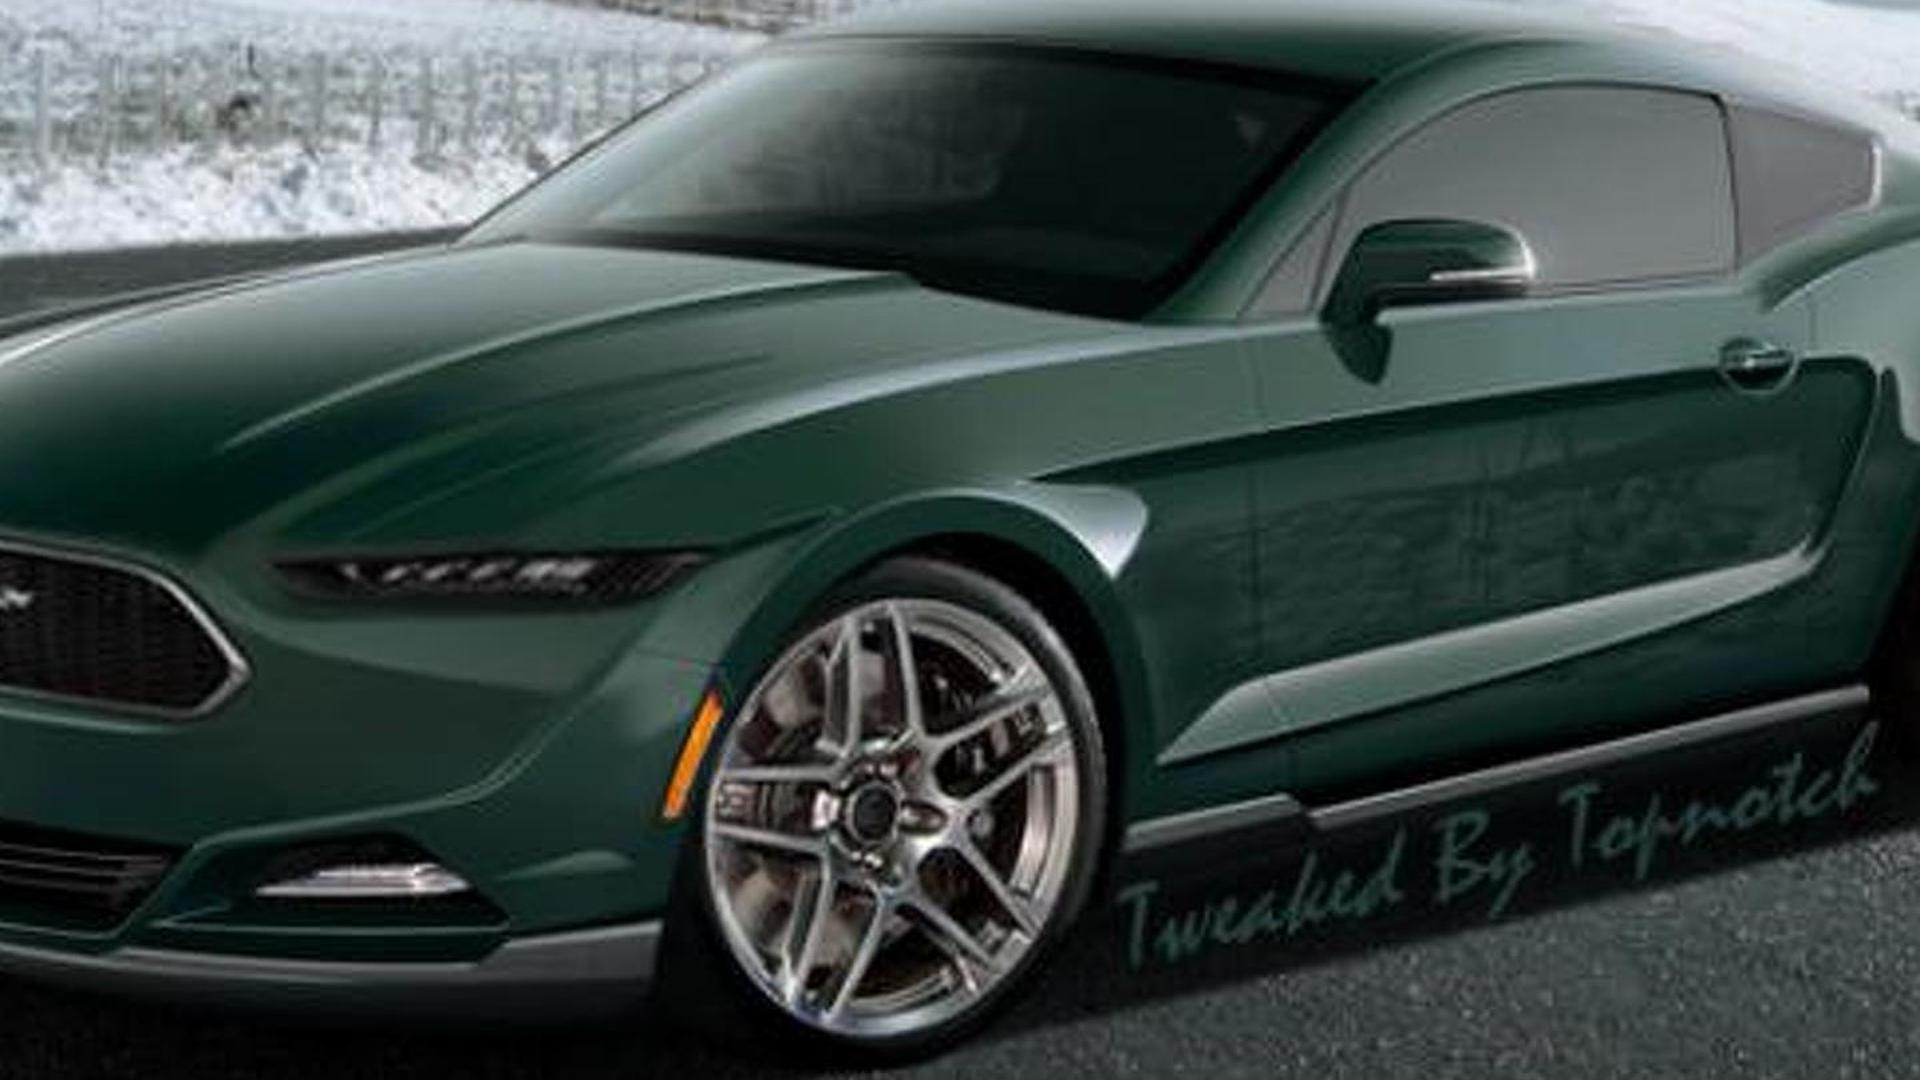 2015 Ford Mustang to drop the Shelby variant & the supercharged engine - report